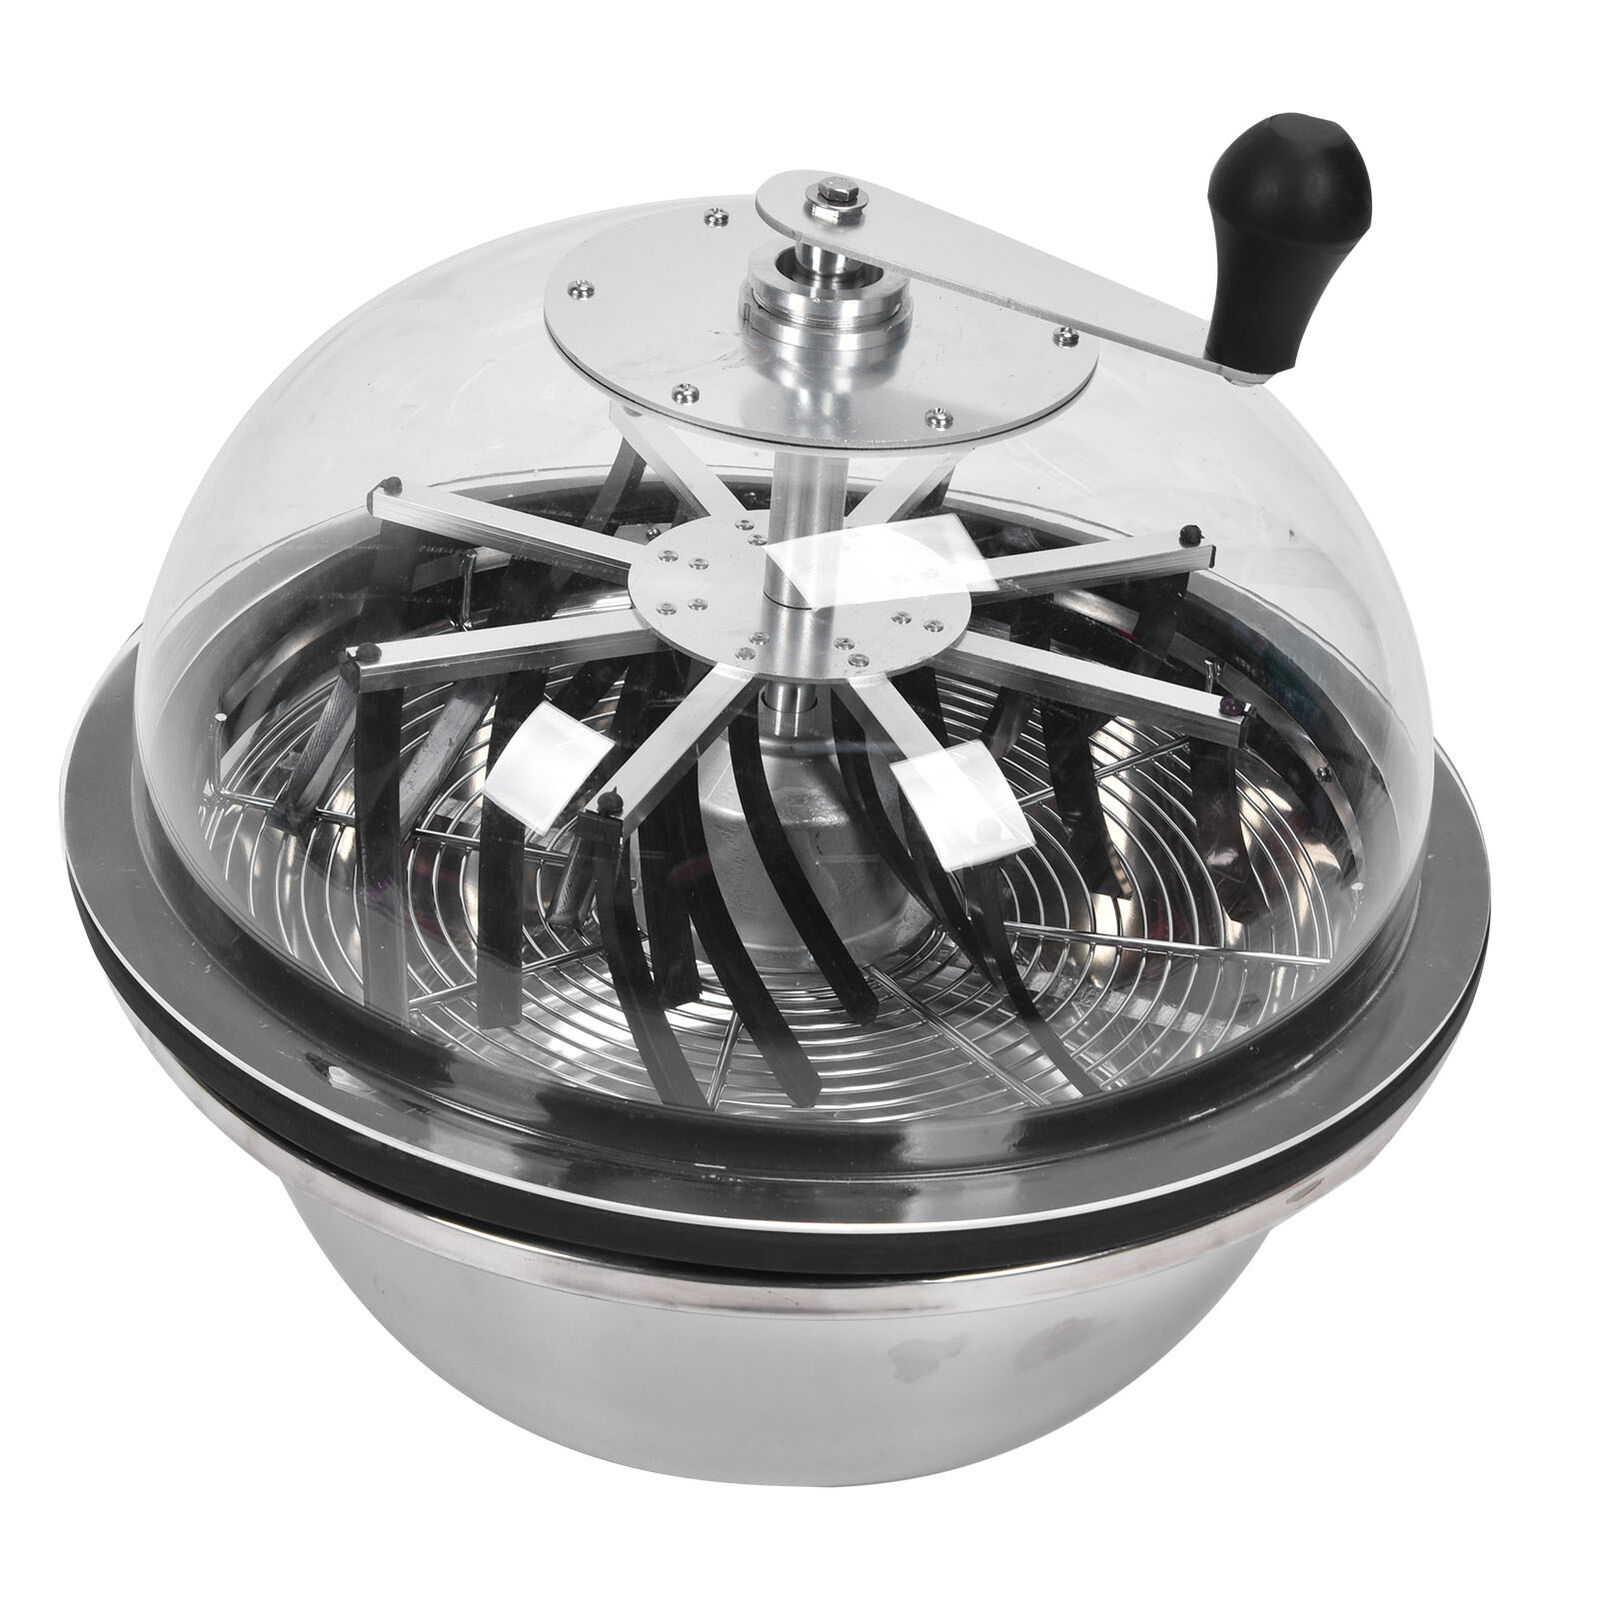 Bud Leaf Bowl Trimmer With Blade Stainless Steel Bowl Trimmer For Buds Leaves JY